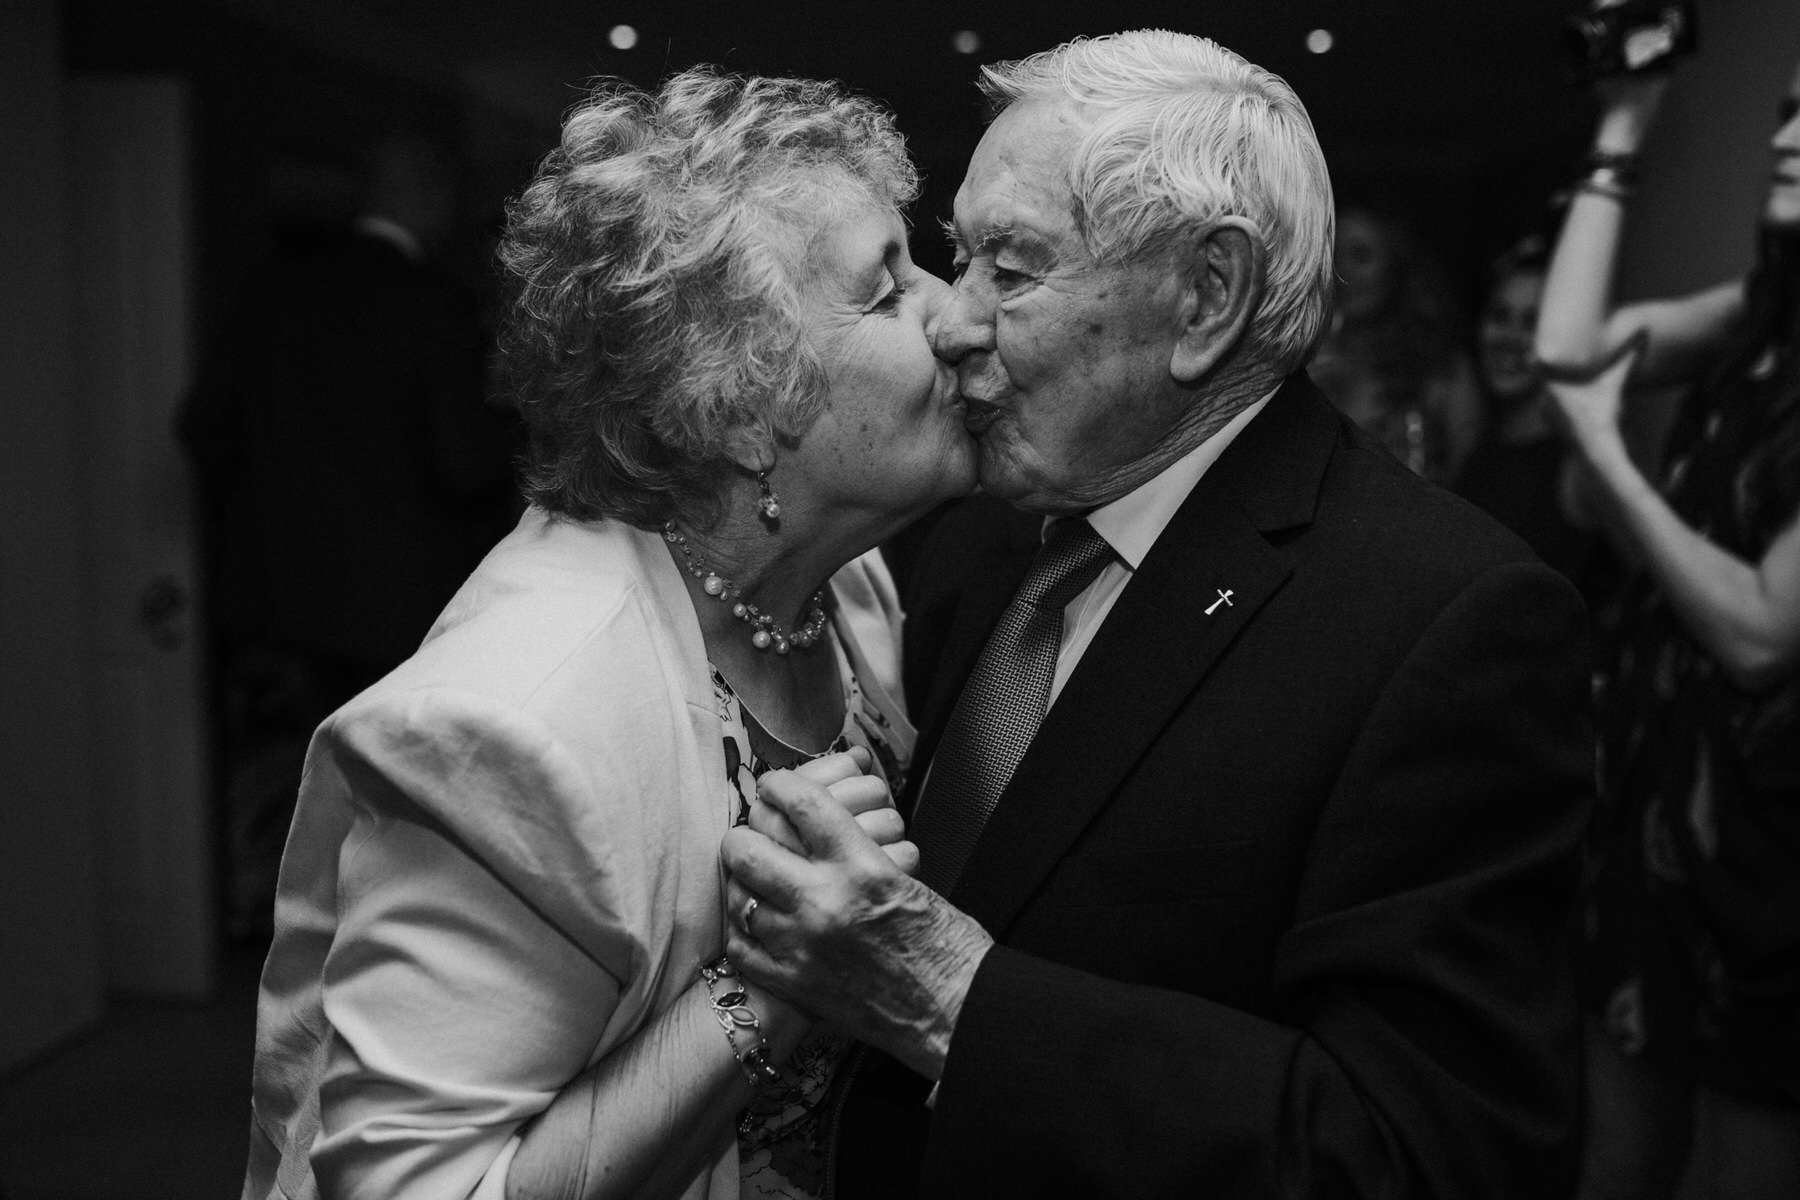 Grandma kissing grandpa dancefloor Bingham Hotel wedding photographer.jpg